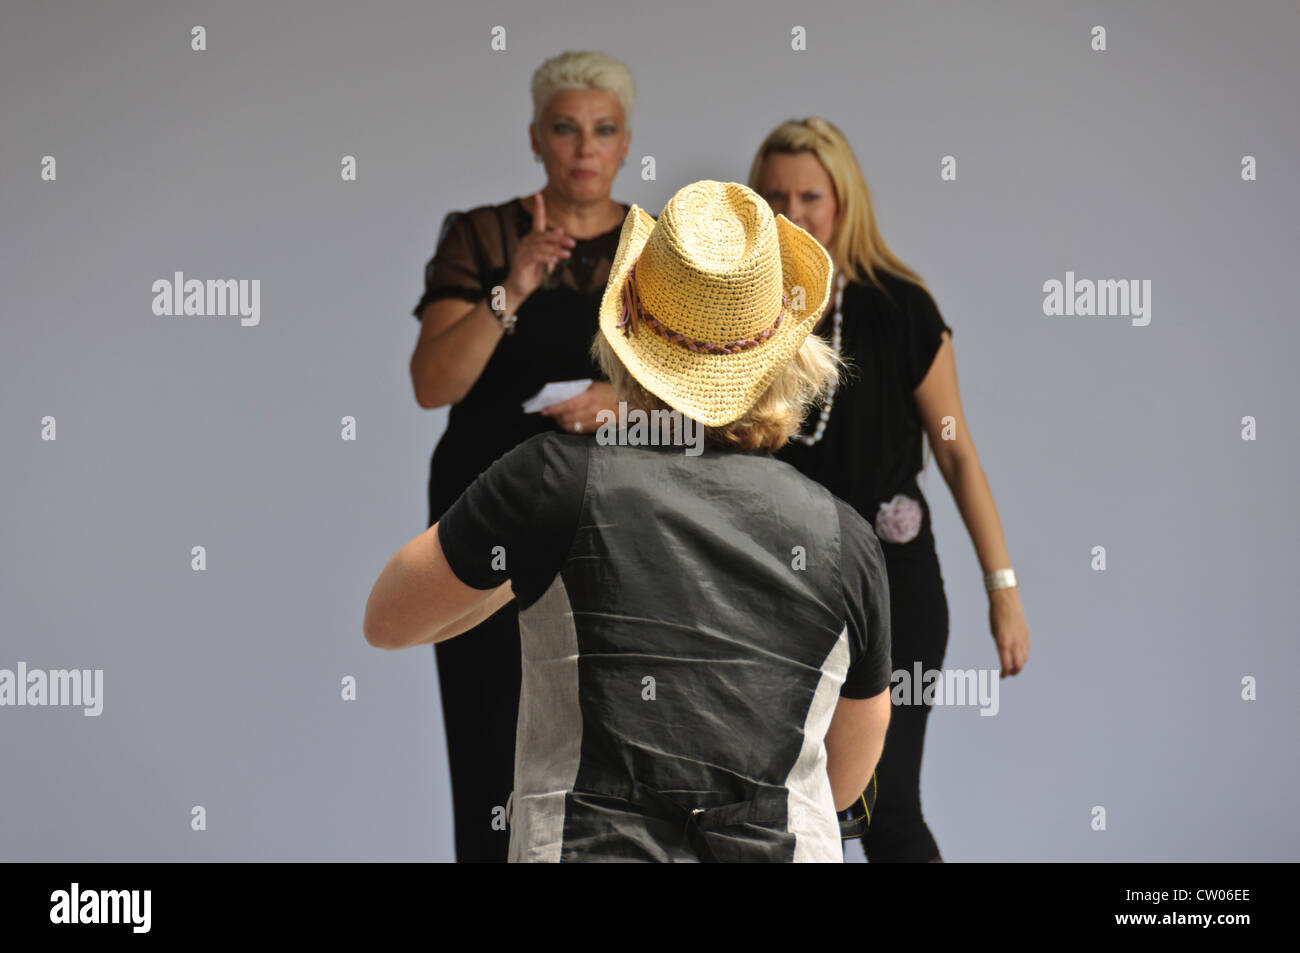 Man wearing straw cowboy hat Stetson style approaches two blond women - Stock Image